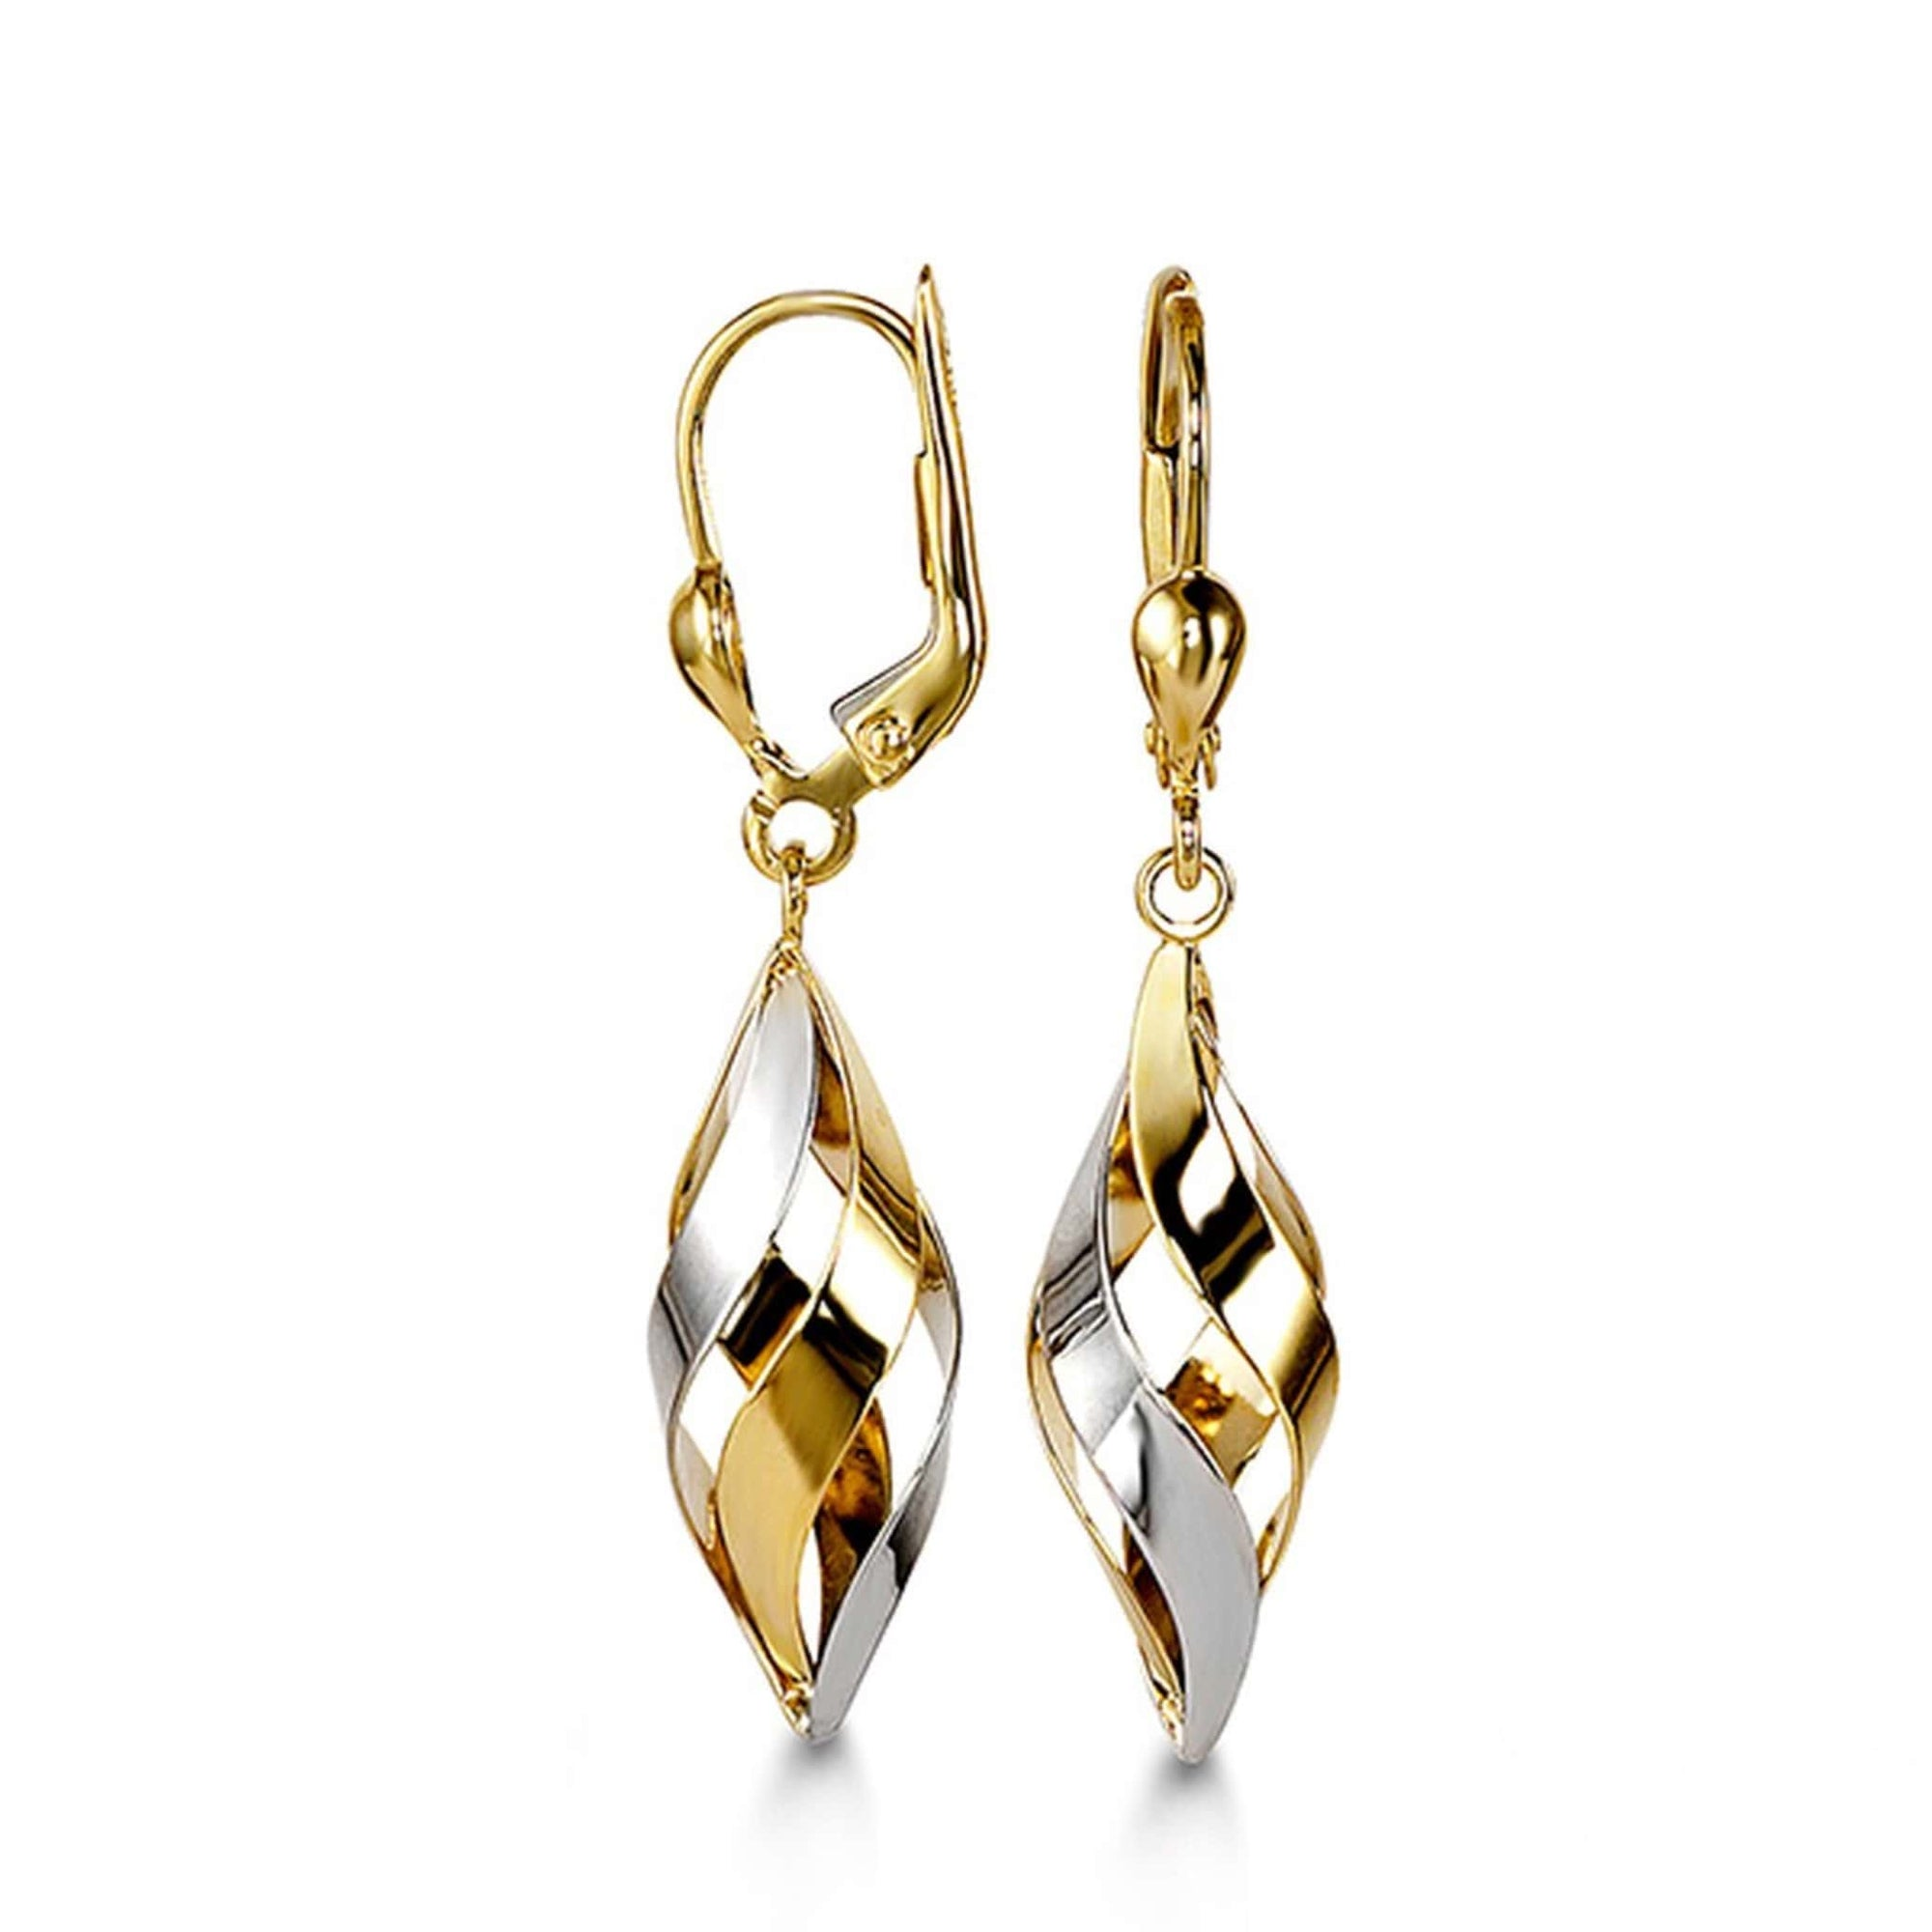 10K Two-Tone Twist Dangle Earrings at Arman's Jewellers